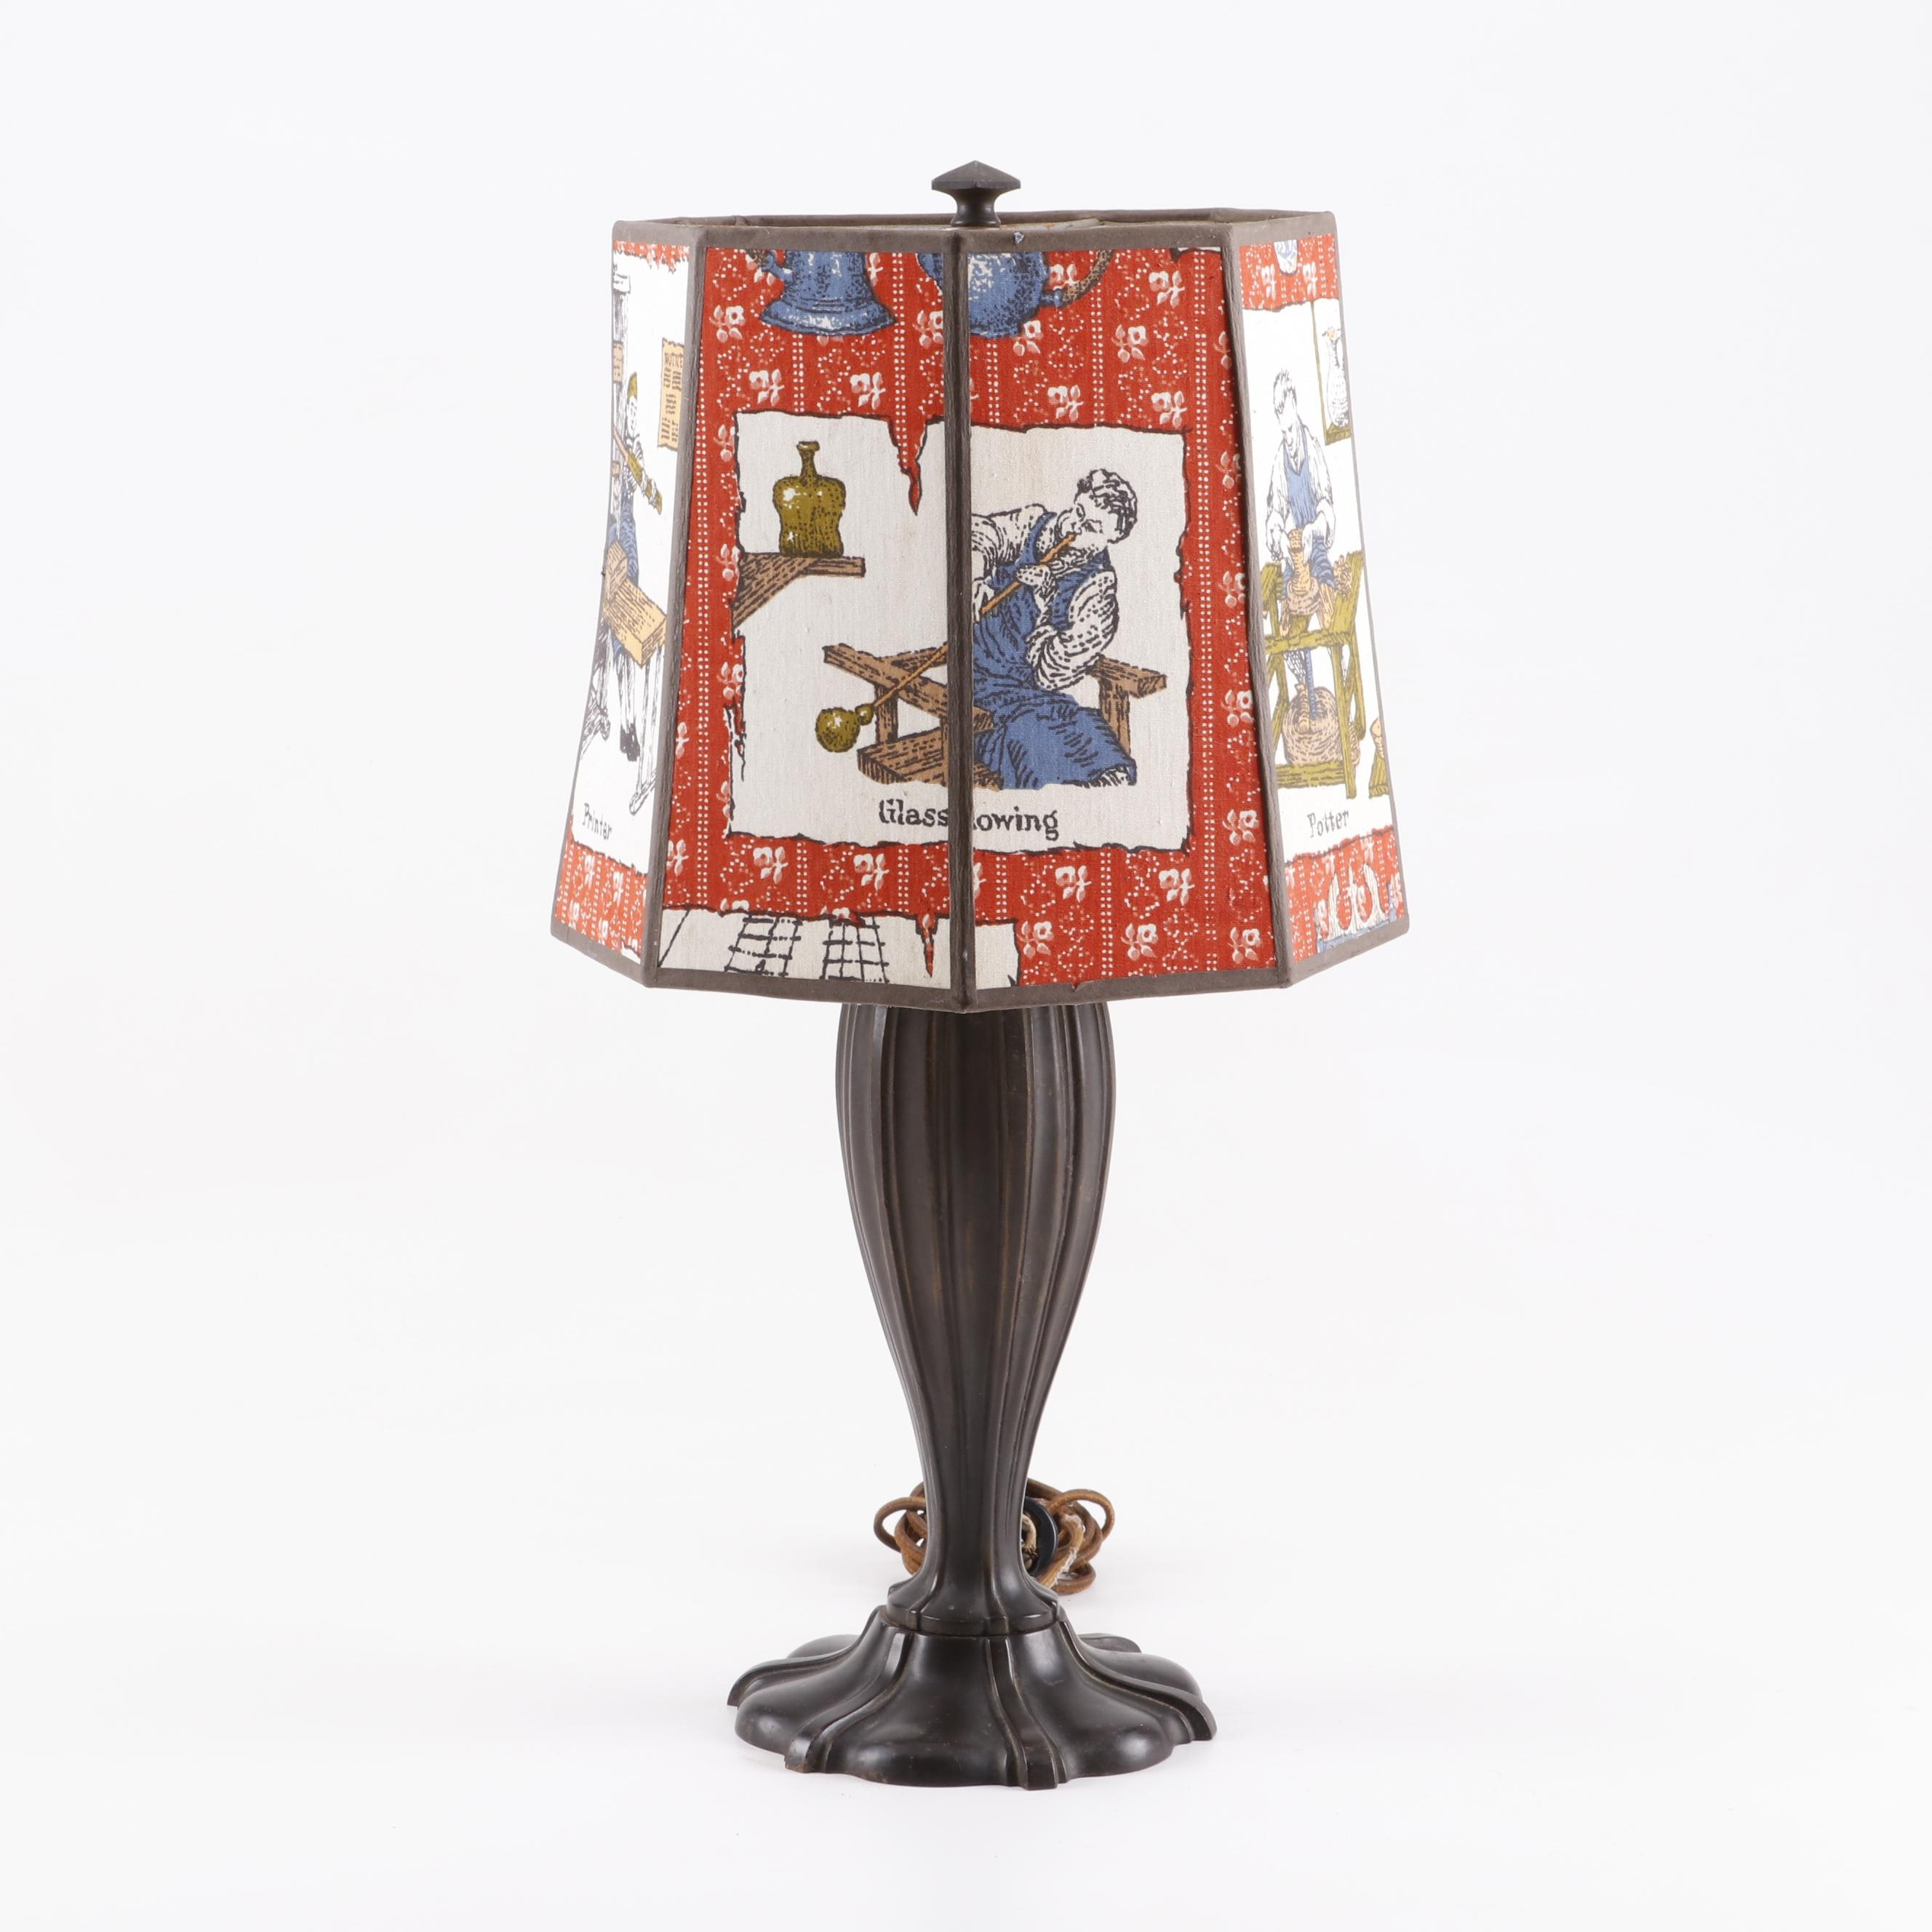 Cast Metal Table Lamp with Printed Shade Depicting 18th Century Trades